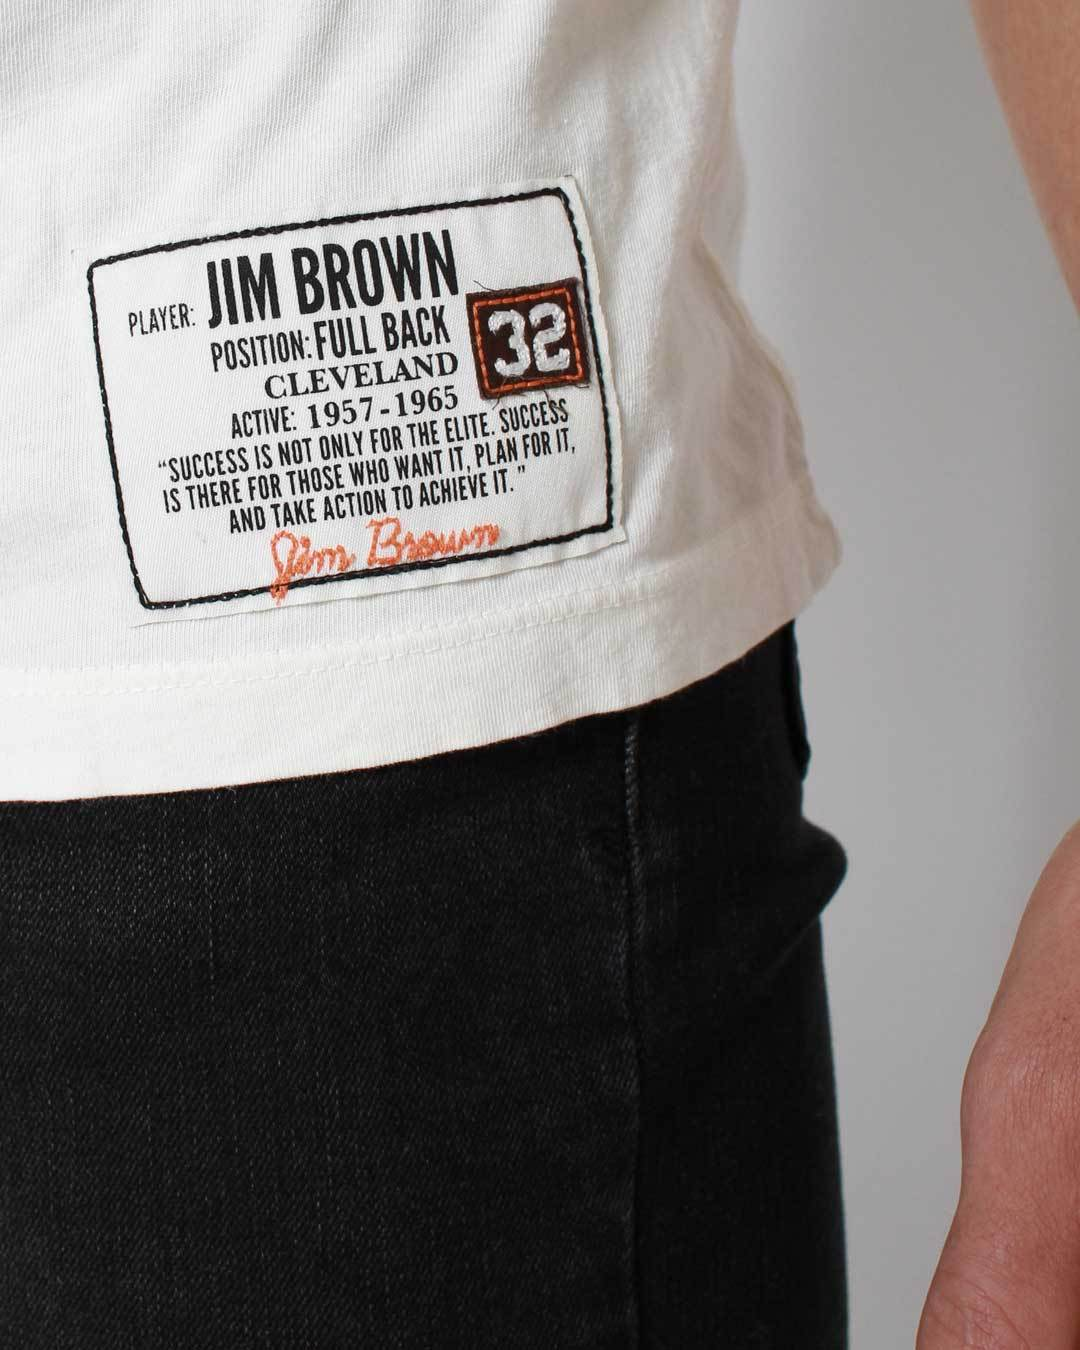 Jim Brown # 32 Cleveland Tee